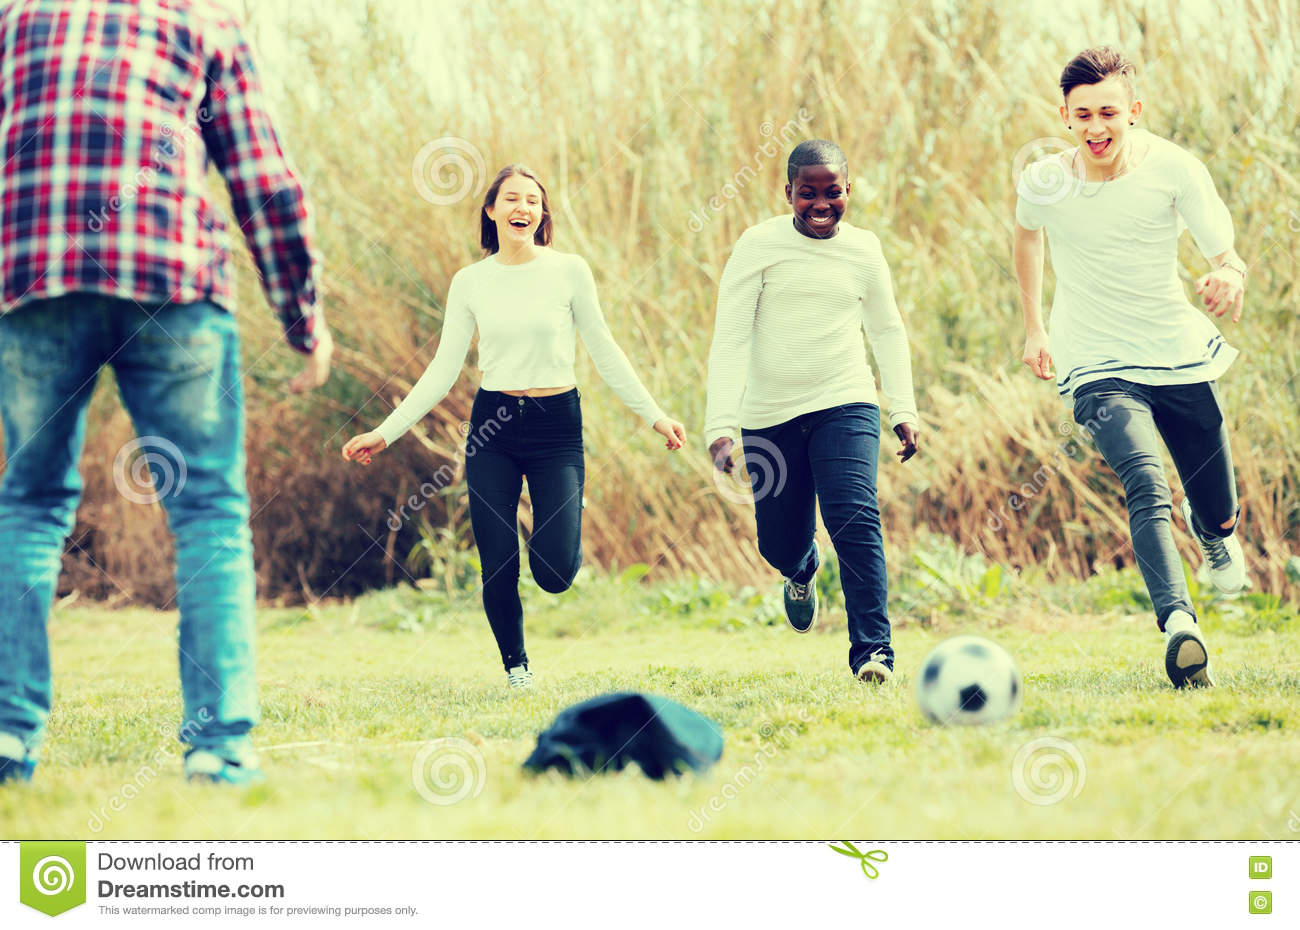 Teenage Friends Playing Football Stock Photo - Image: 71619919